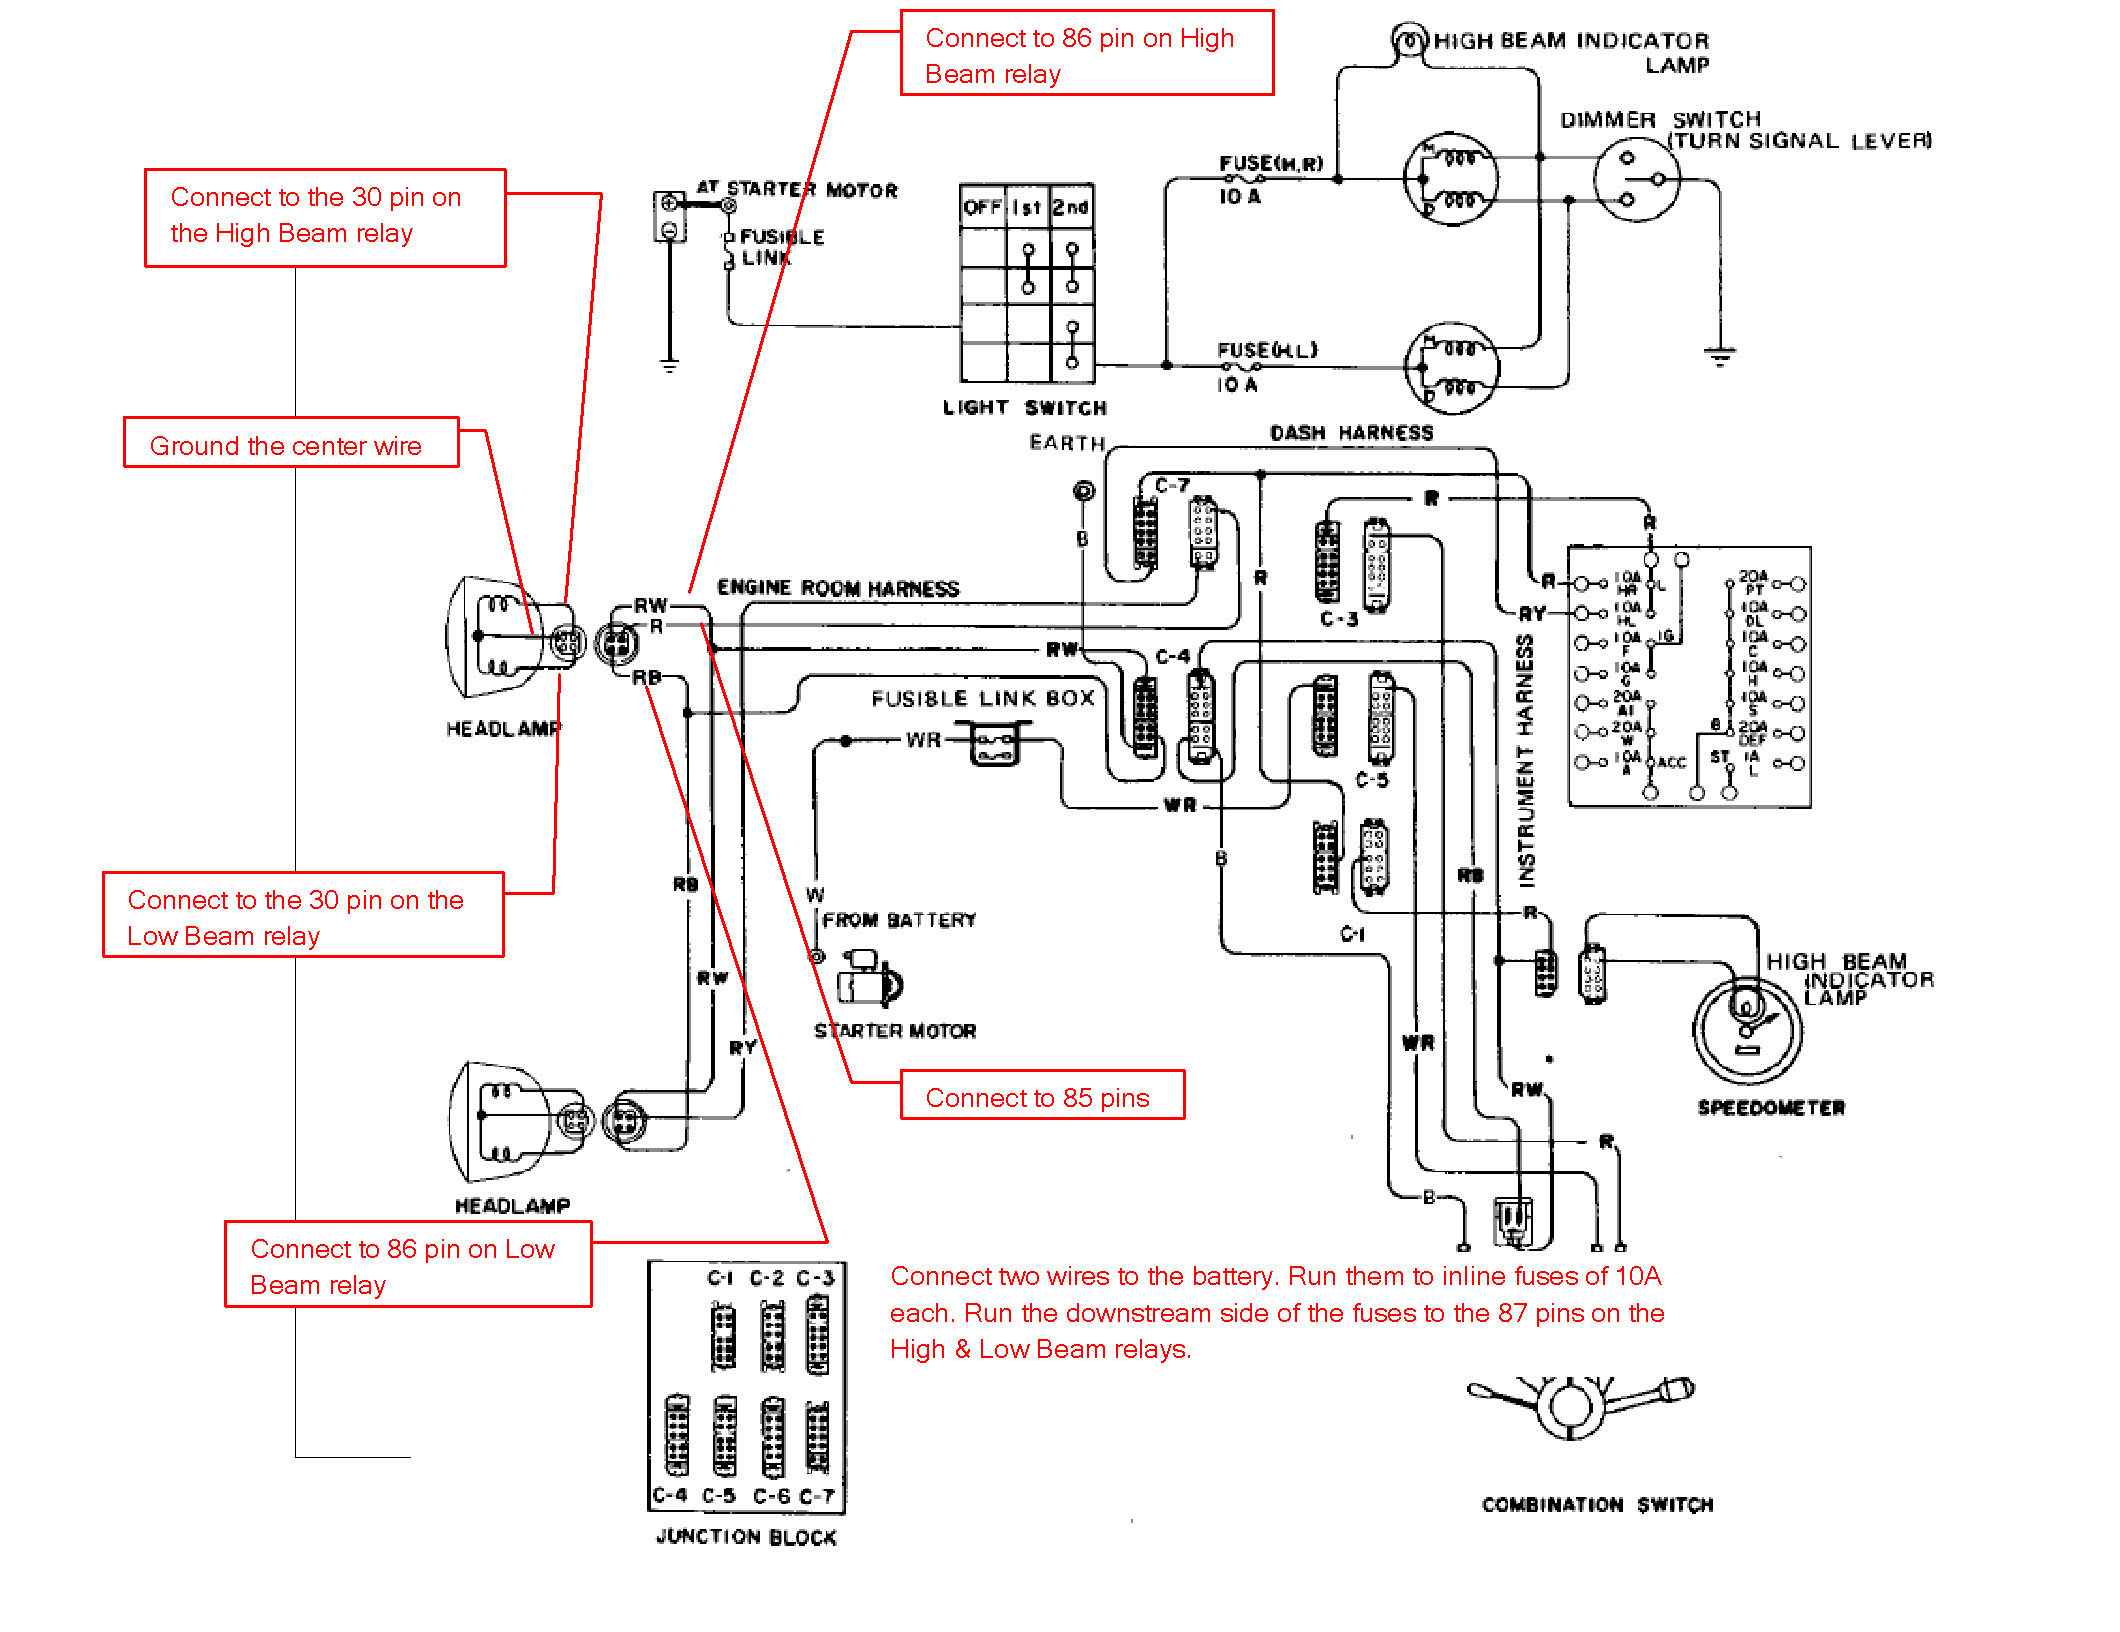 car headlight wiring diagram single phase start stop switch 280z 29 images